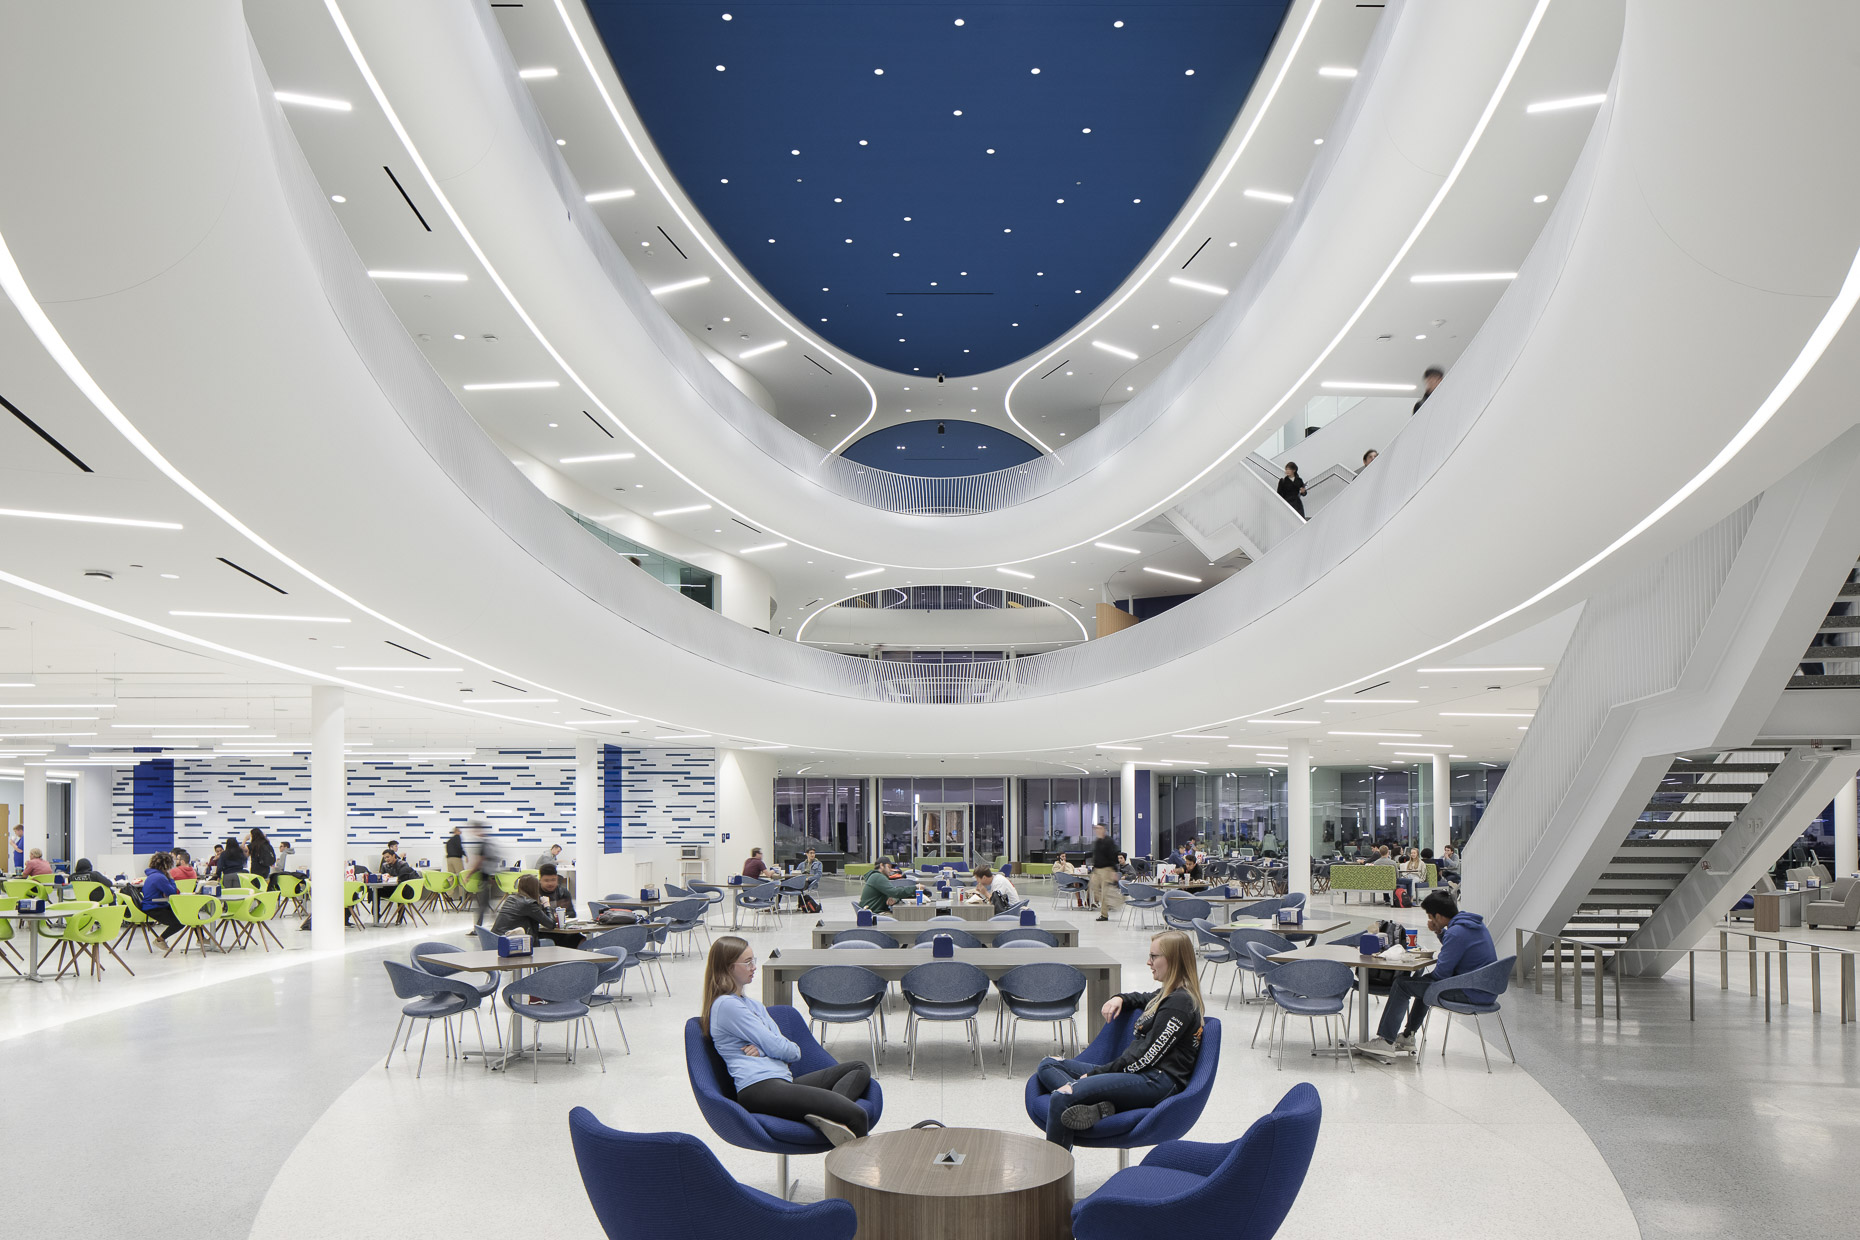 Embry-Riddle Aeronautical University Student Union by Ikon.5 Architects photographed by Brad Feinknopf based in Columbus, Ohio